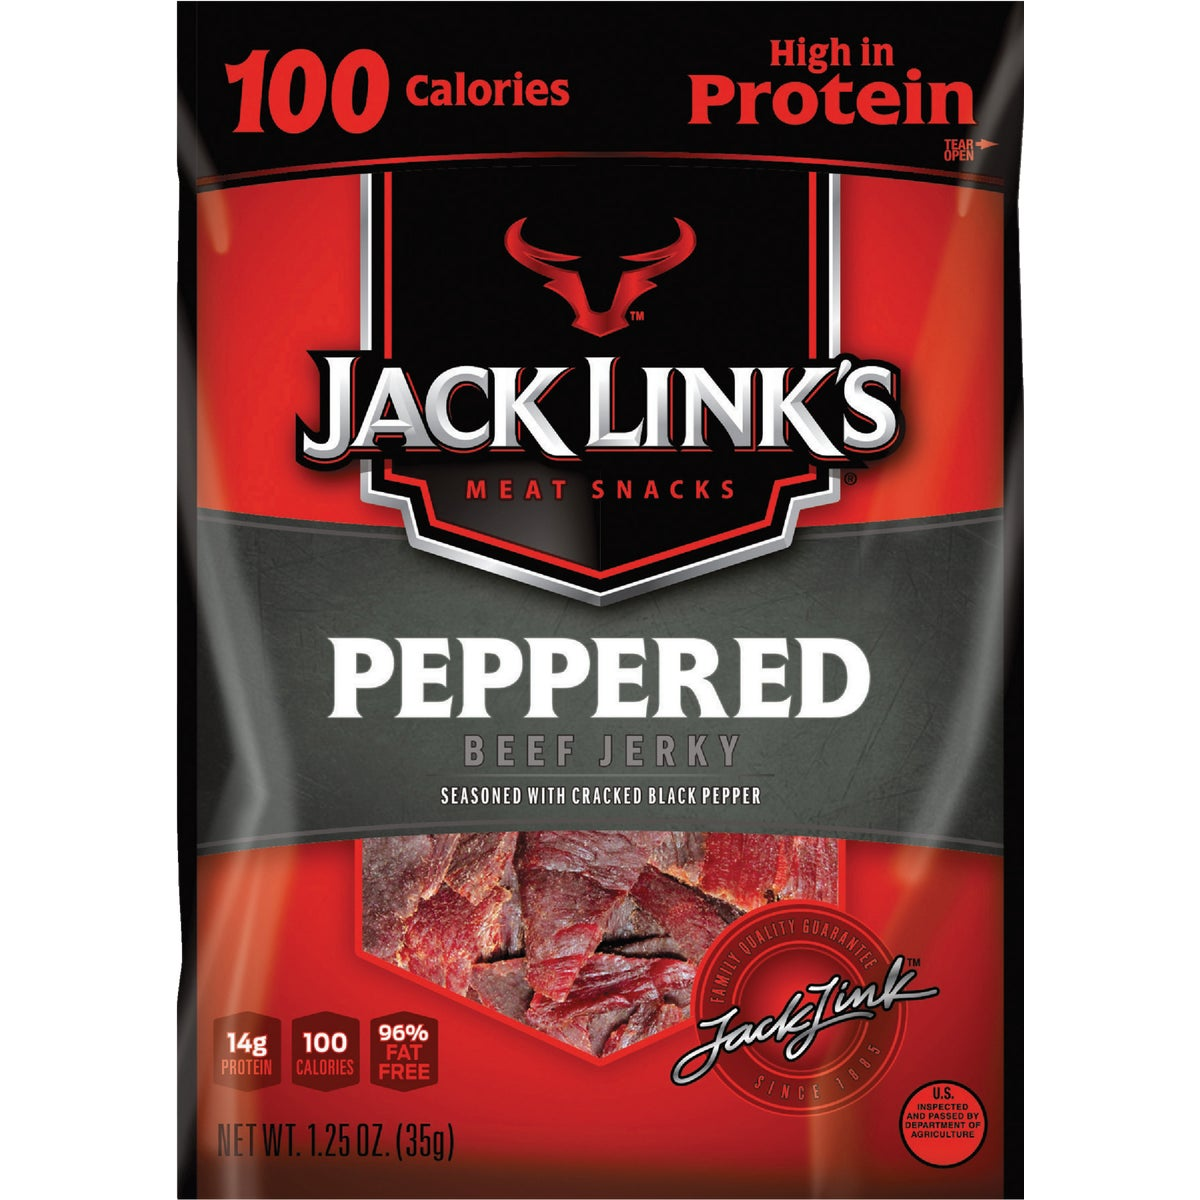 1.5OZ PEPPERED JERKY - 48641 by Jack Links